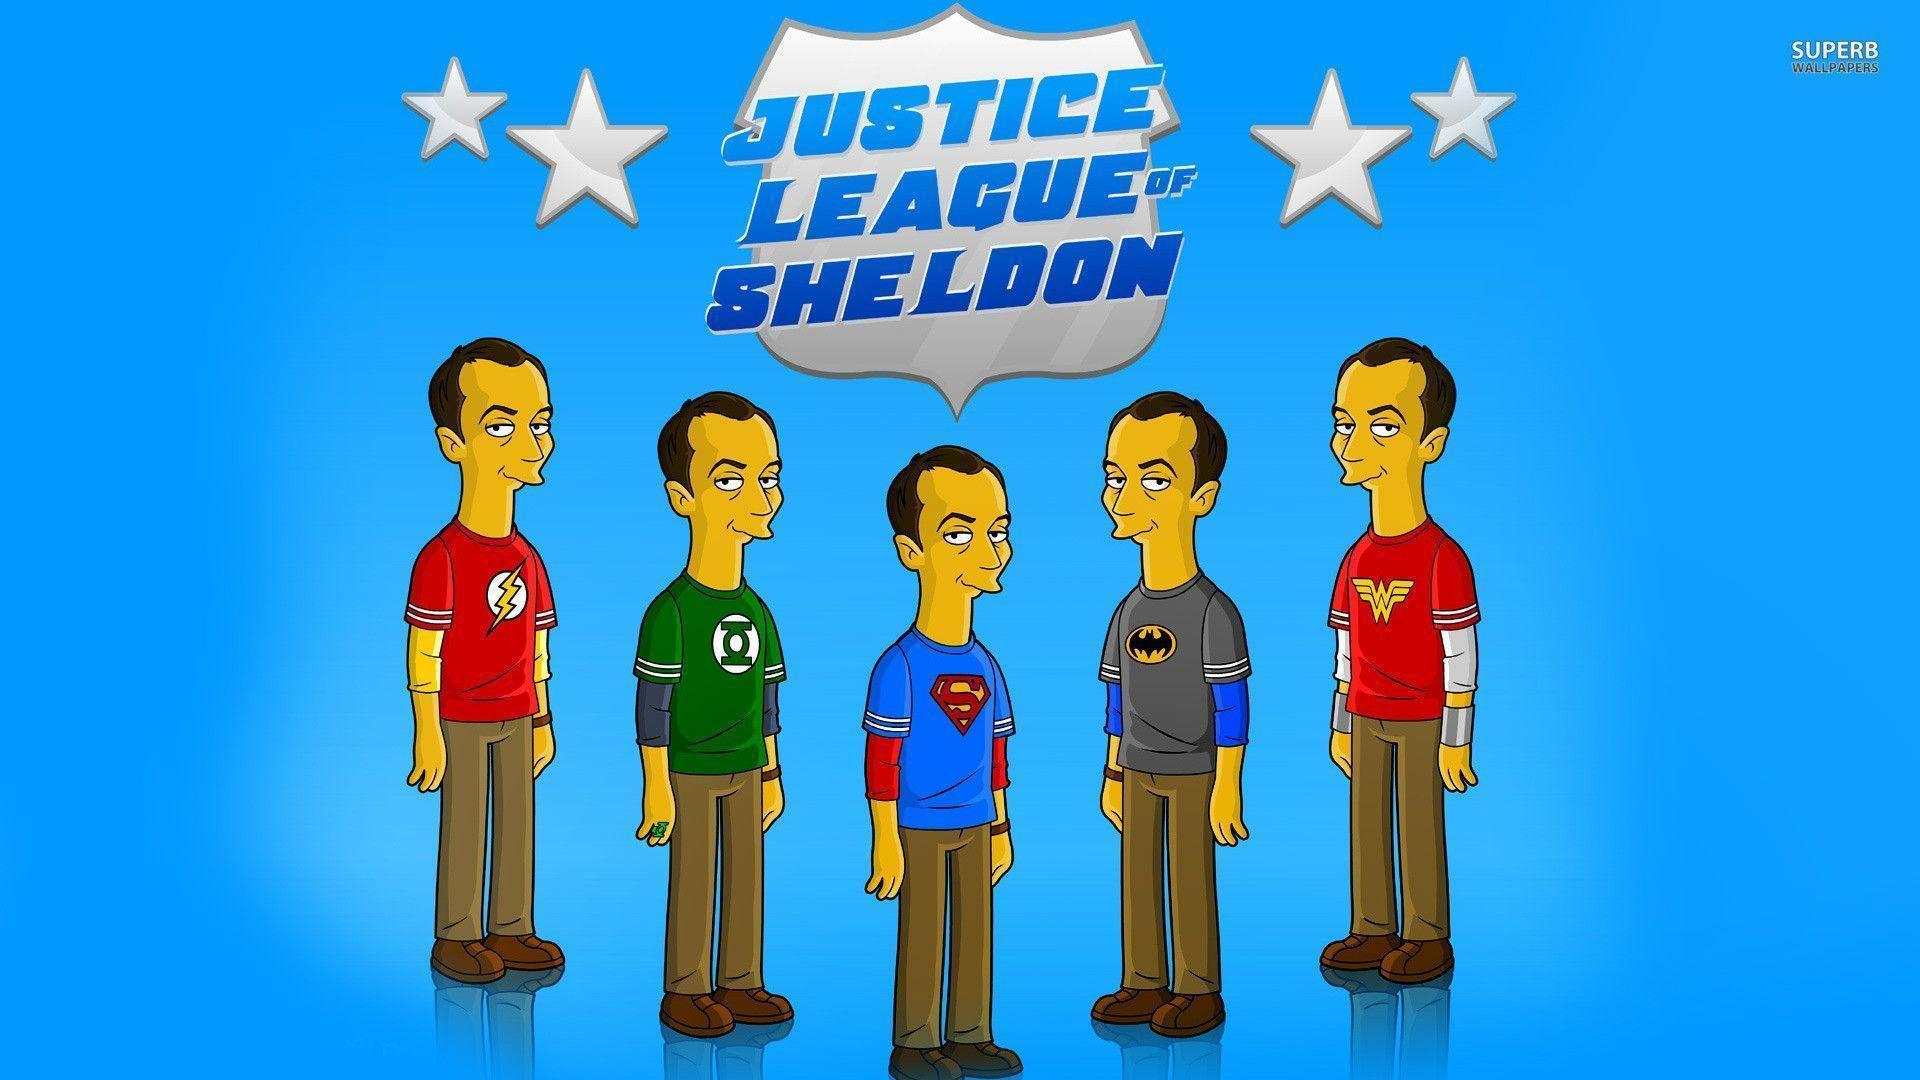 Justice league of Sheldon wallpapers